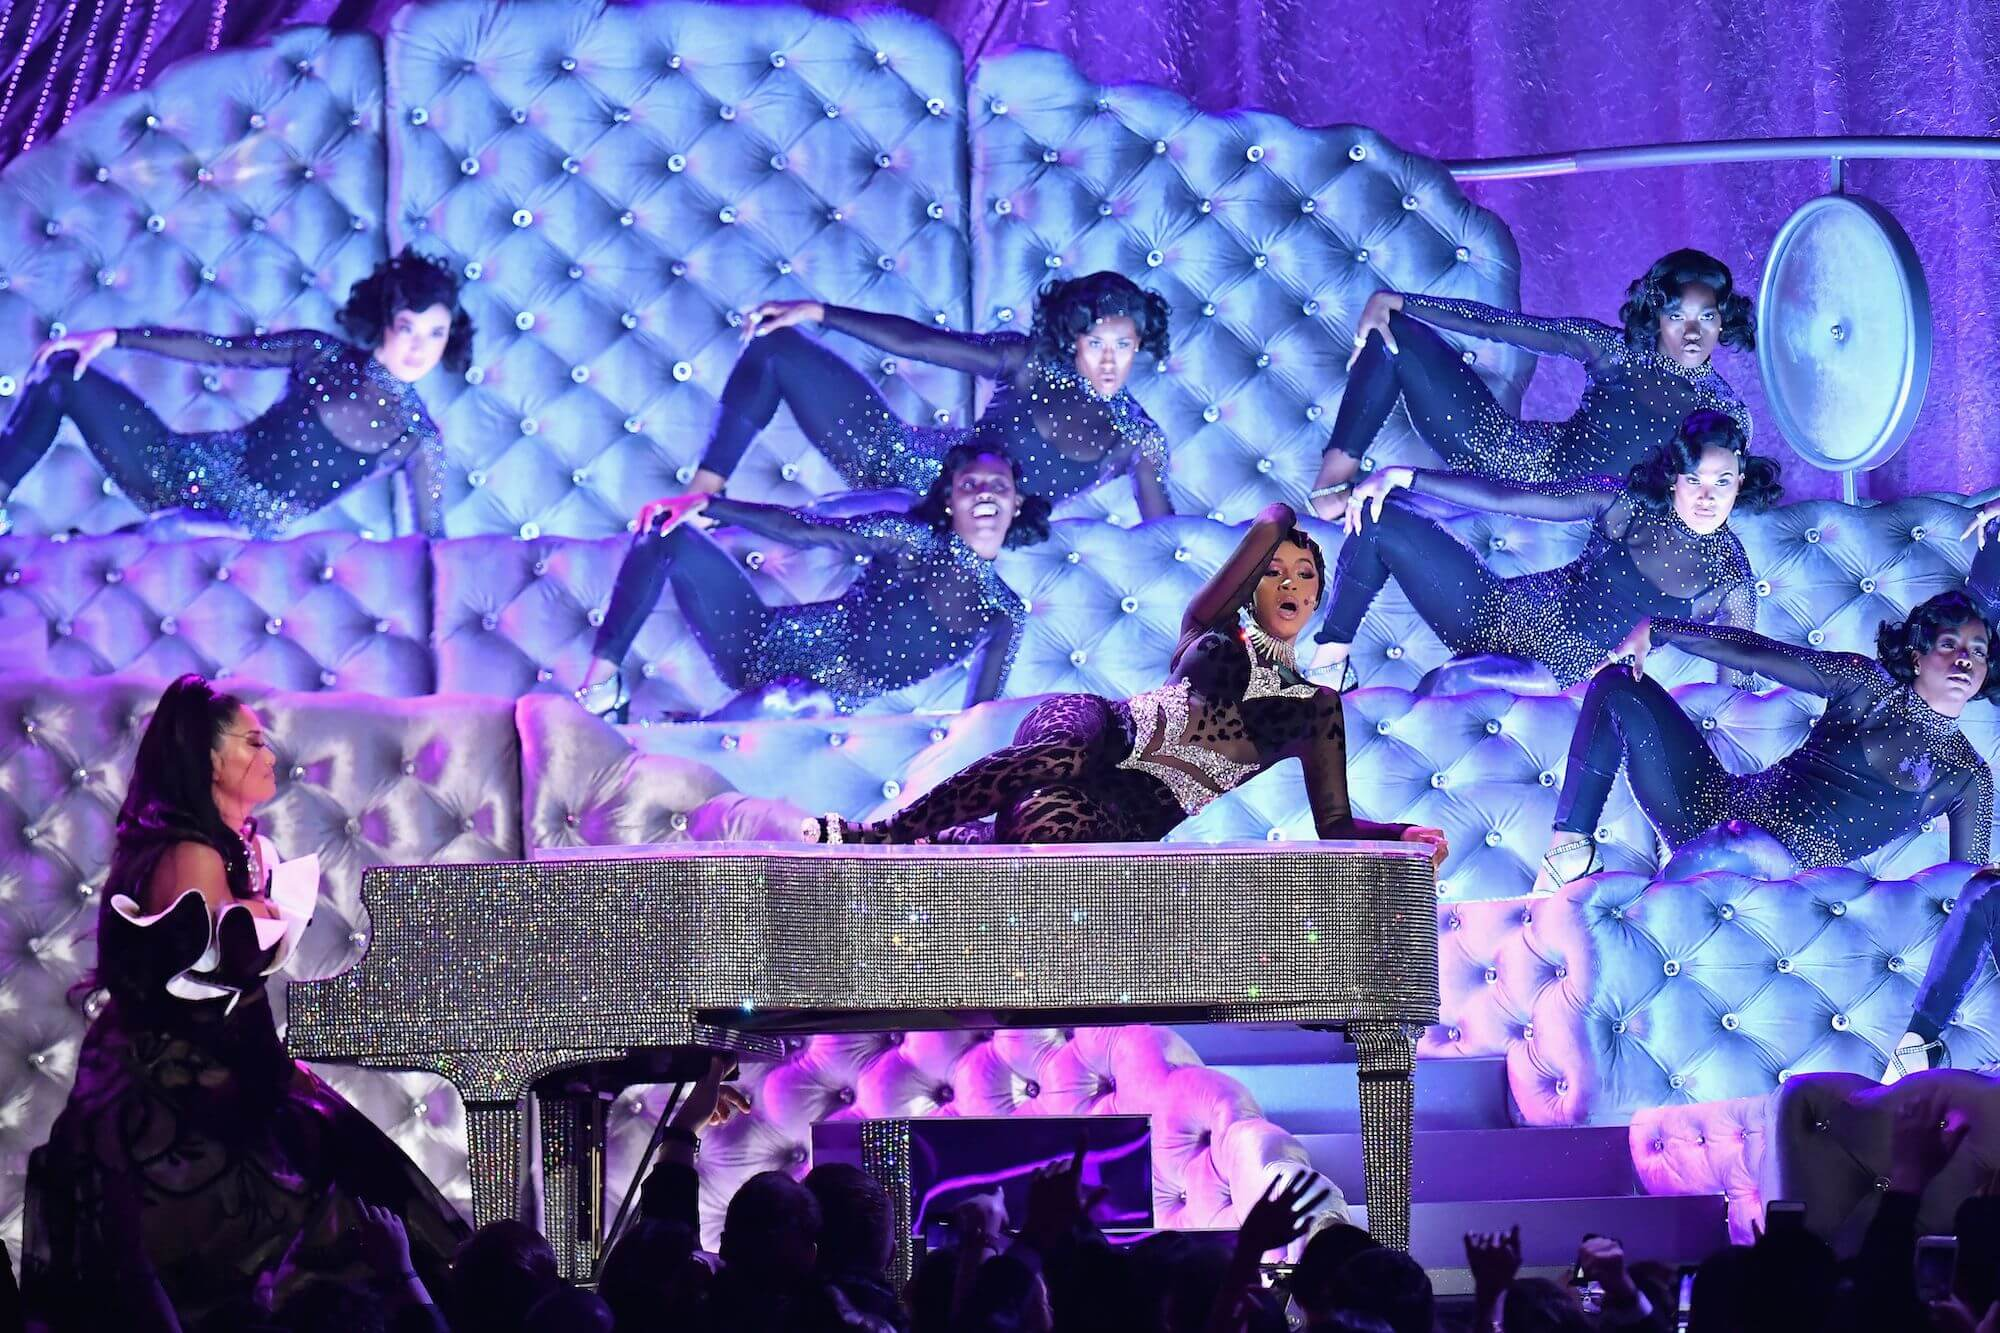 Chloe Flower, Cardi B and the Liberace Crystal Piano at the 2019 Grammy Awards